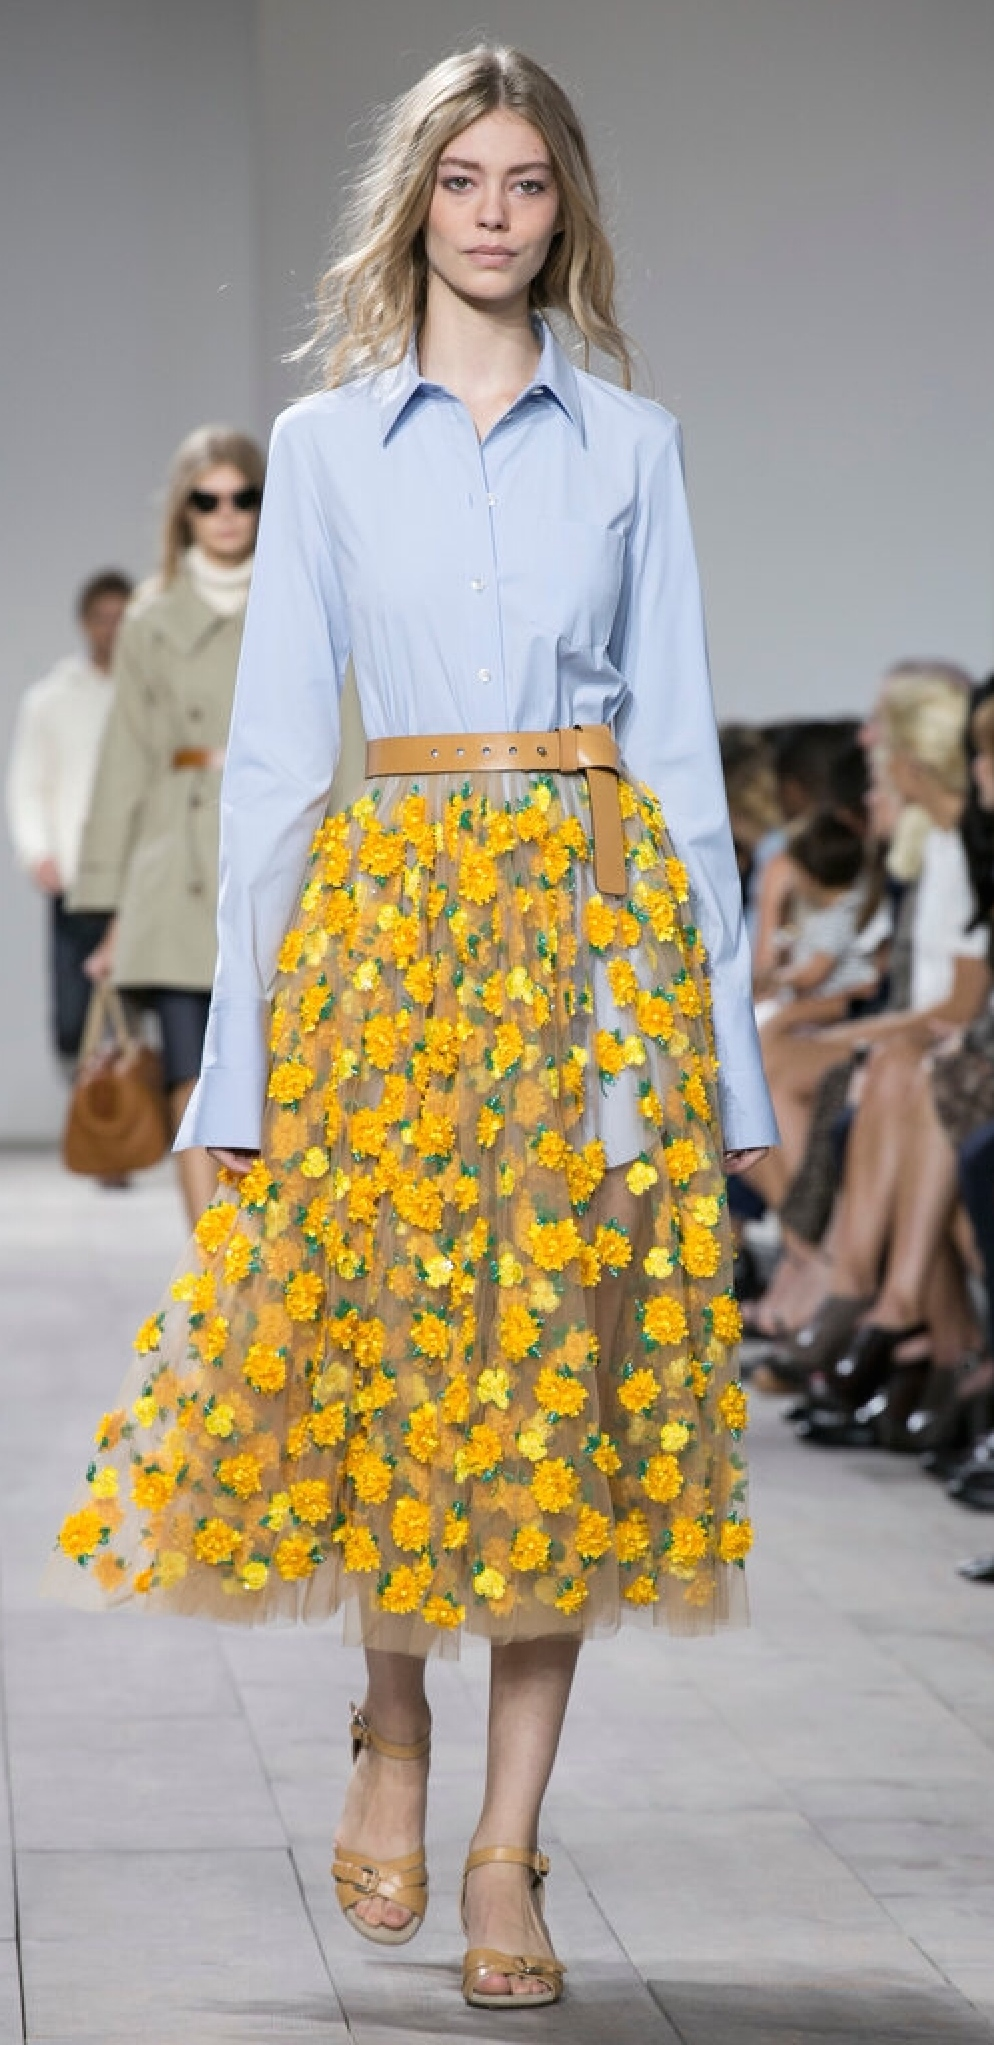 Michael Kors used skin-toned layers topped with flowers which gives the feeling of walking through the garden...gorgeous!